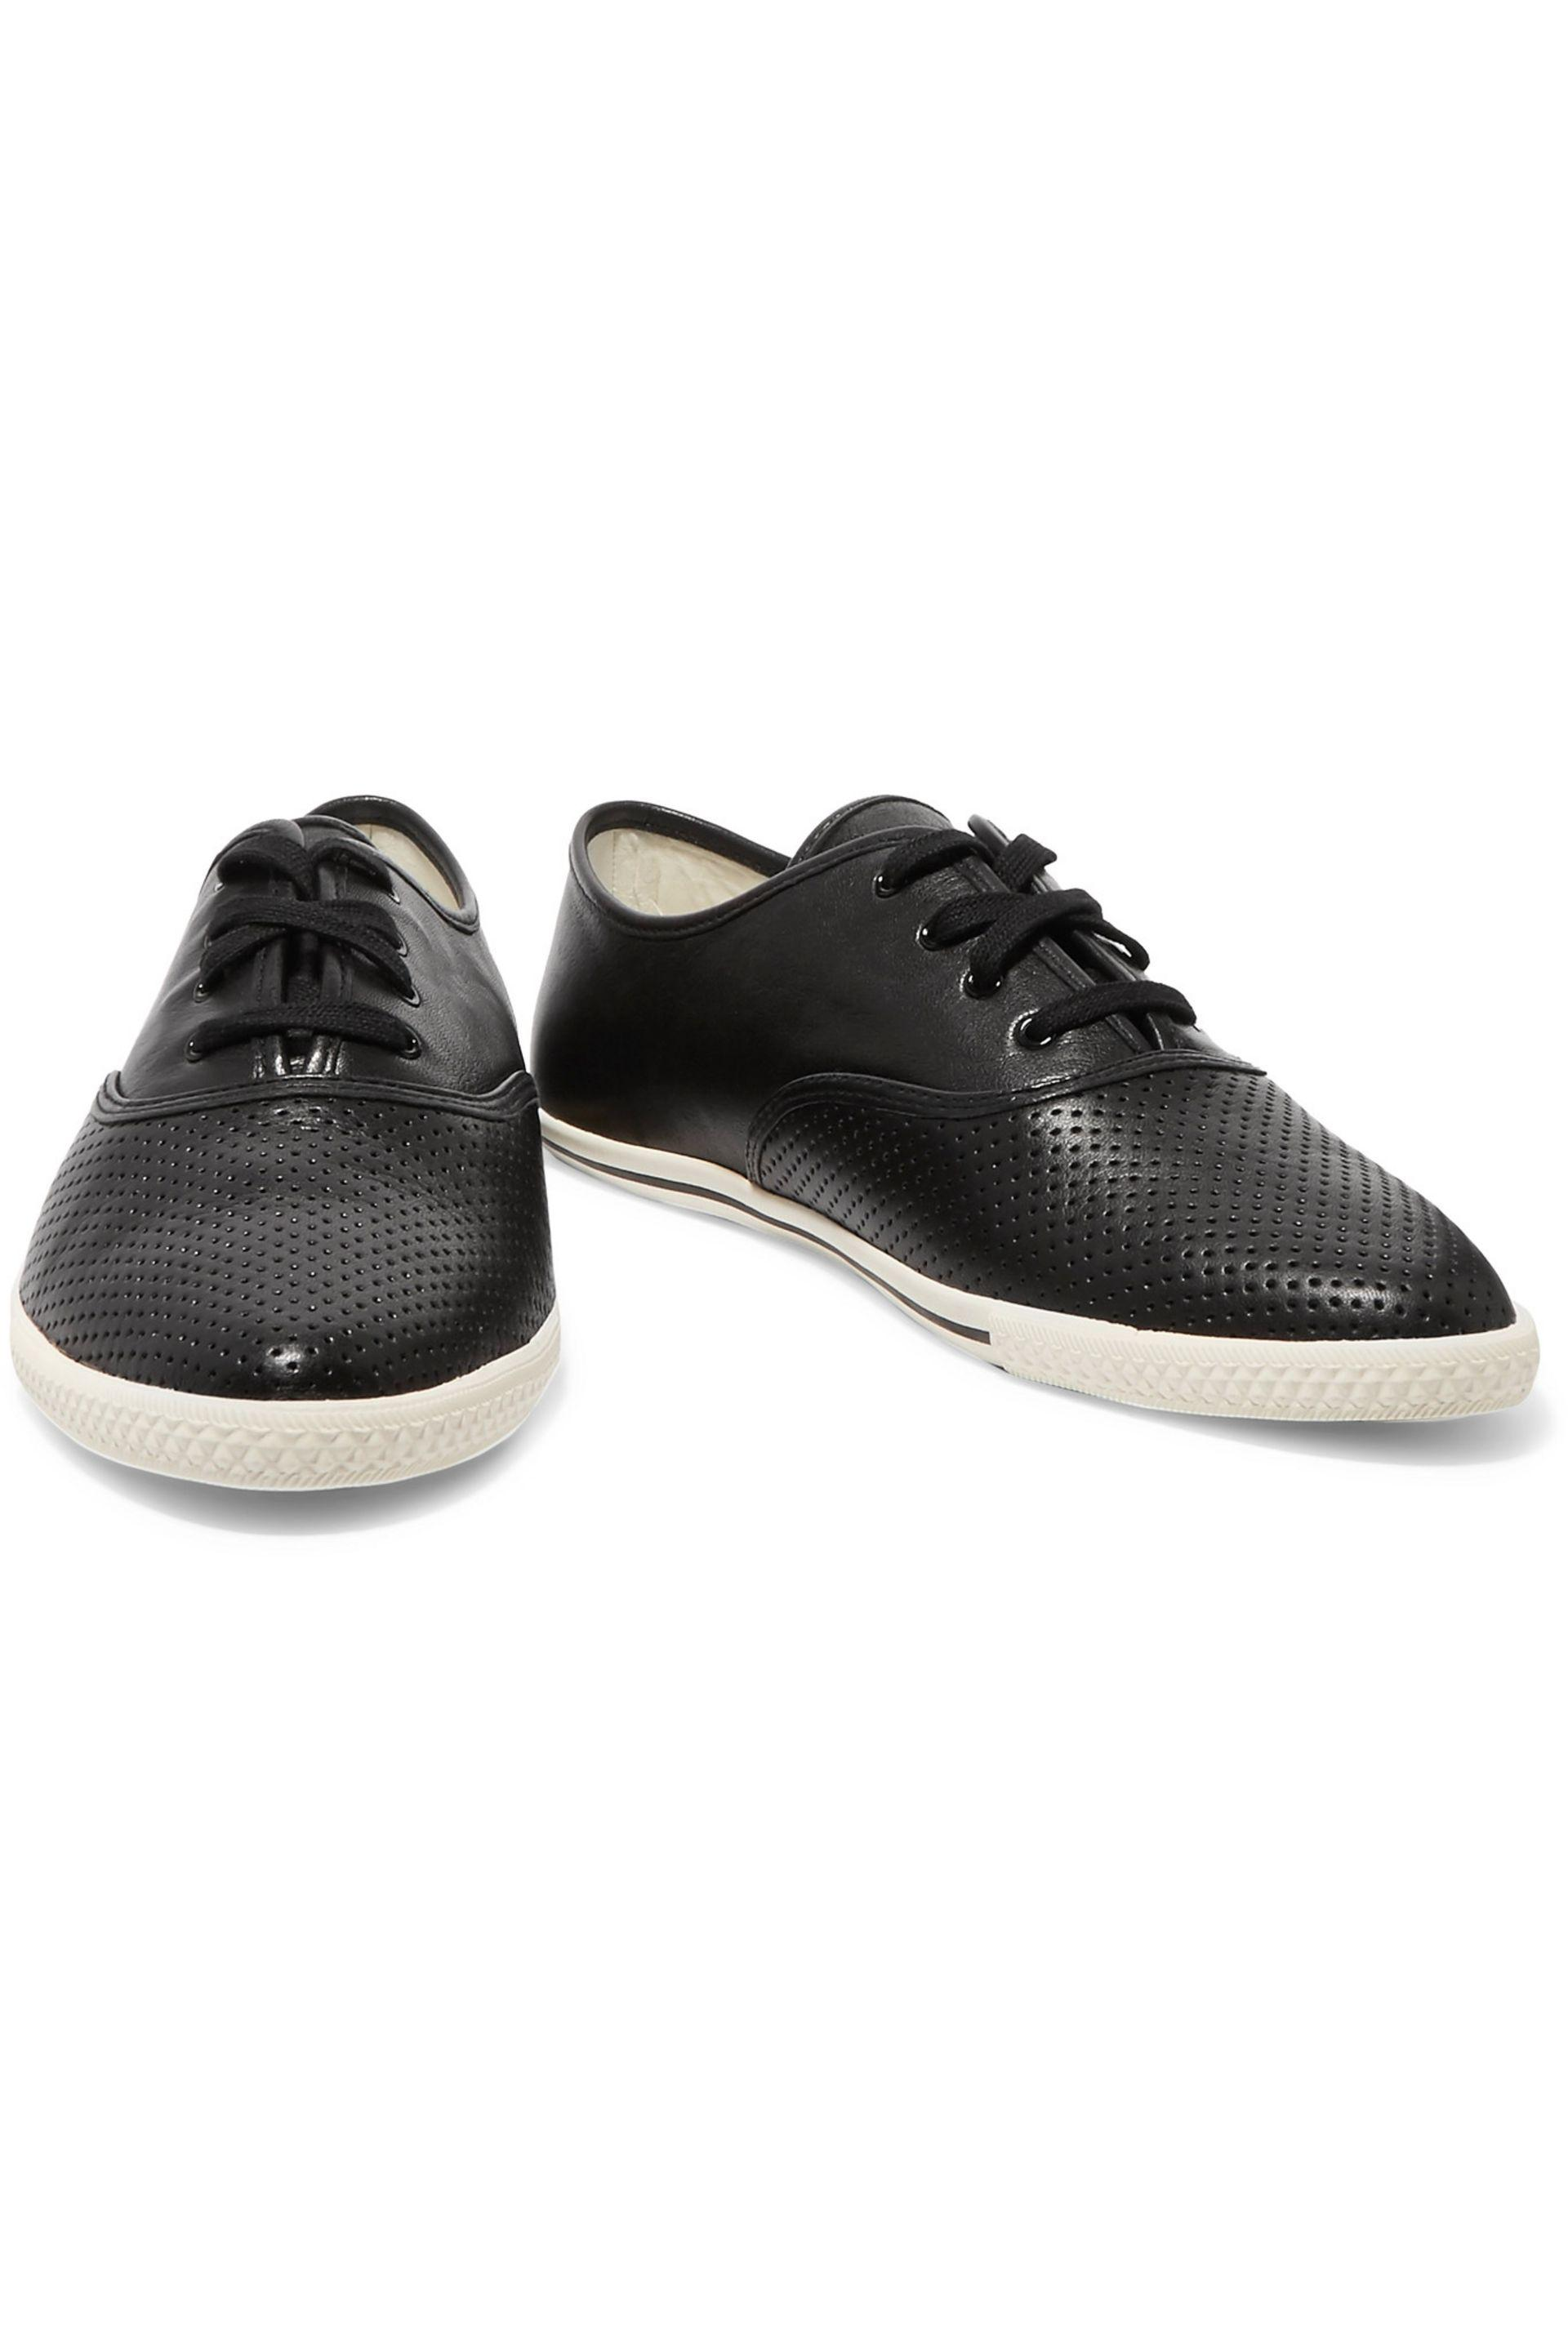 Marc By Marc Jacobs Carter Perforated Leather Sneakers Black